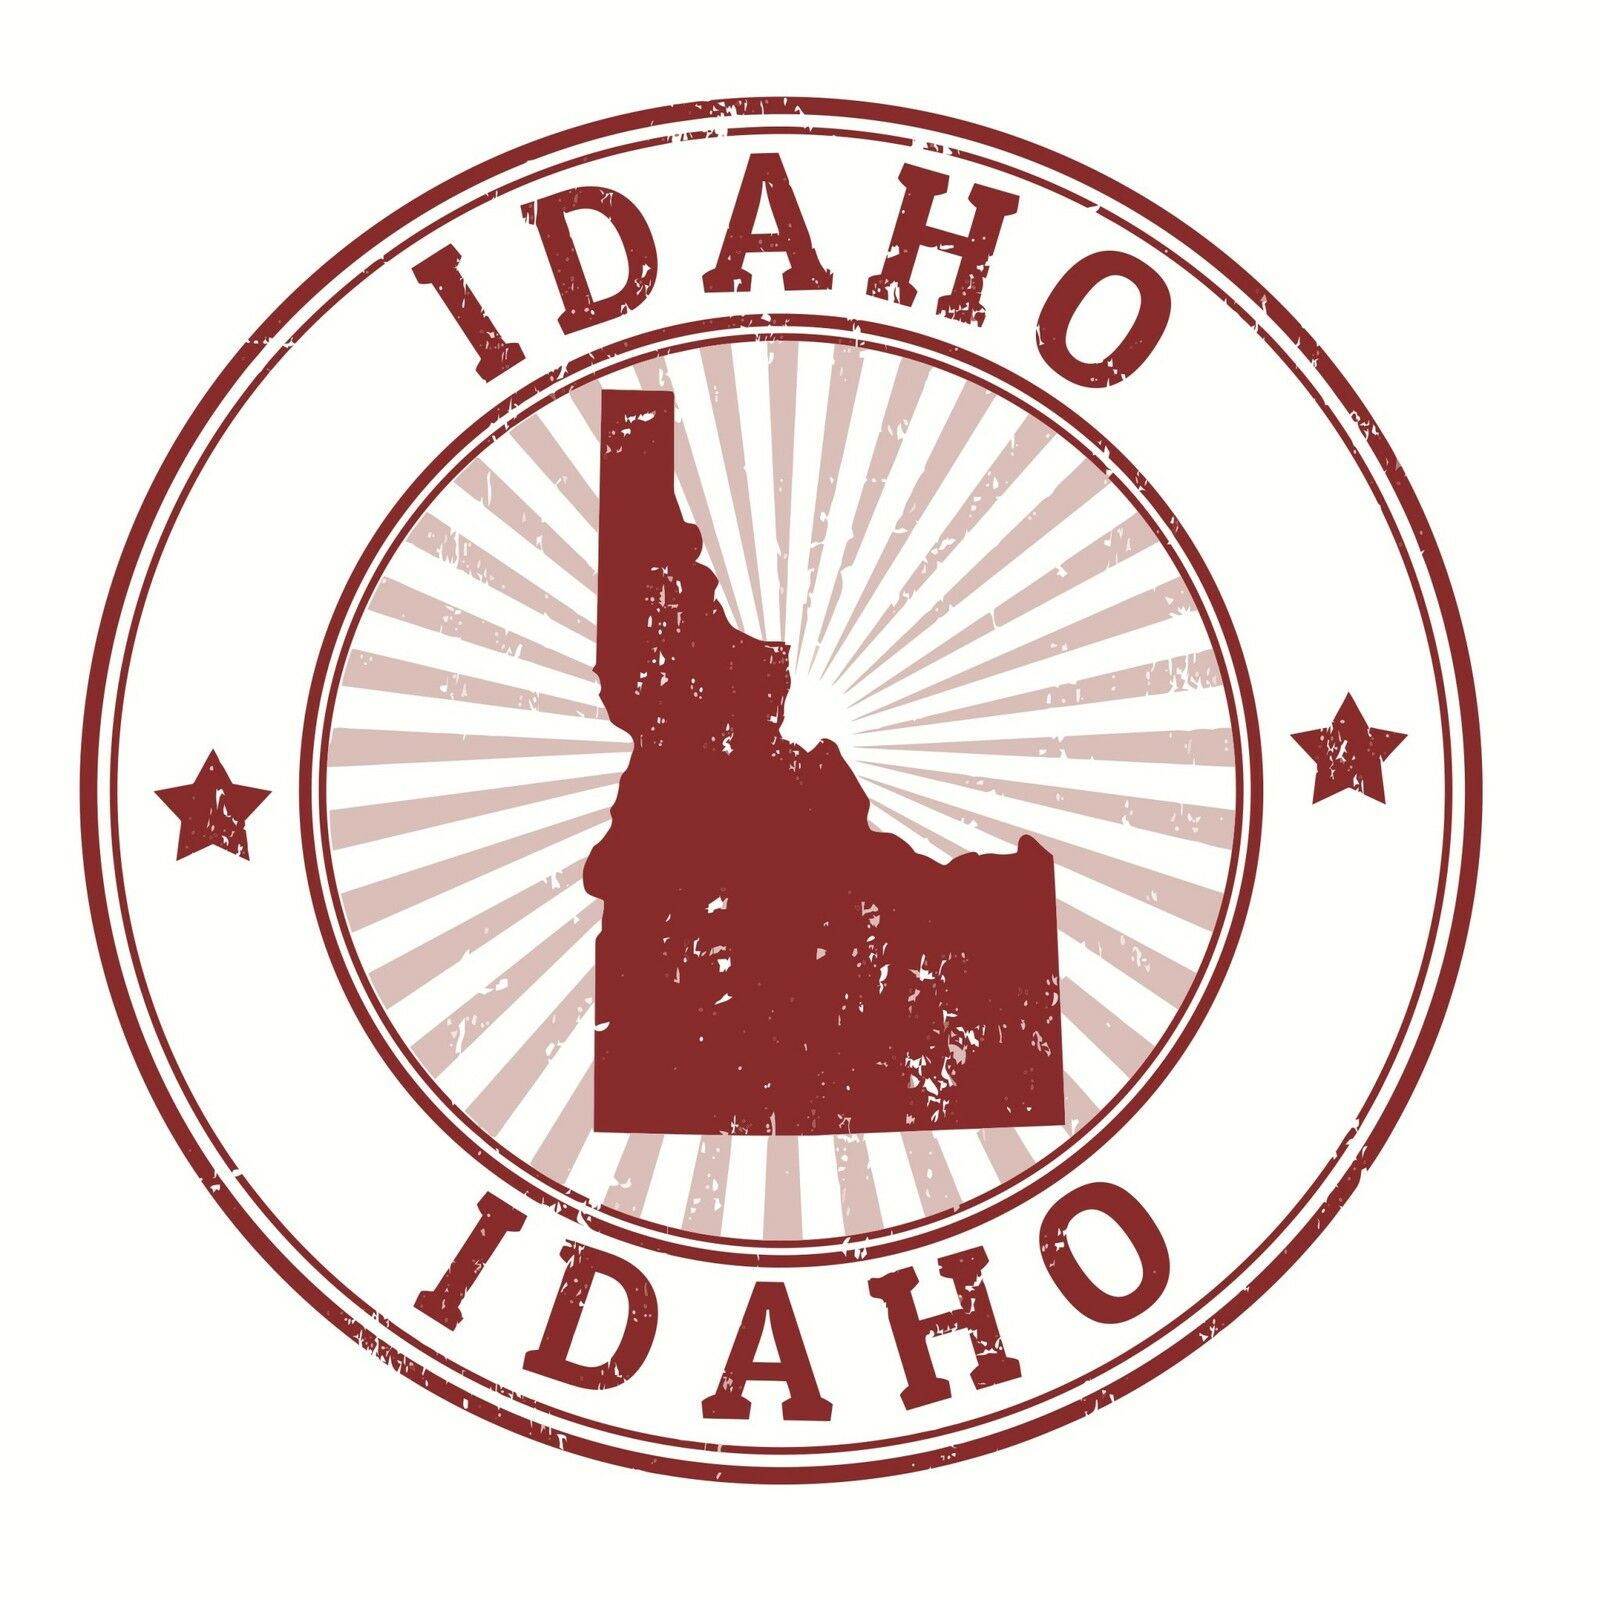 The Idaho Picker